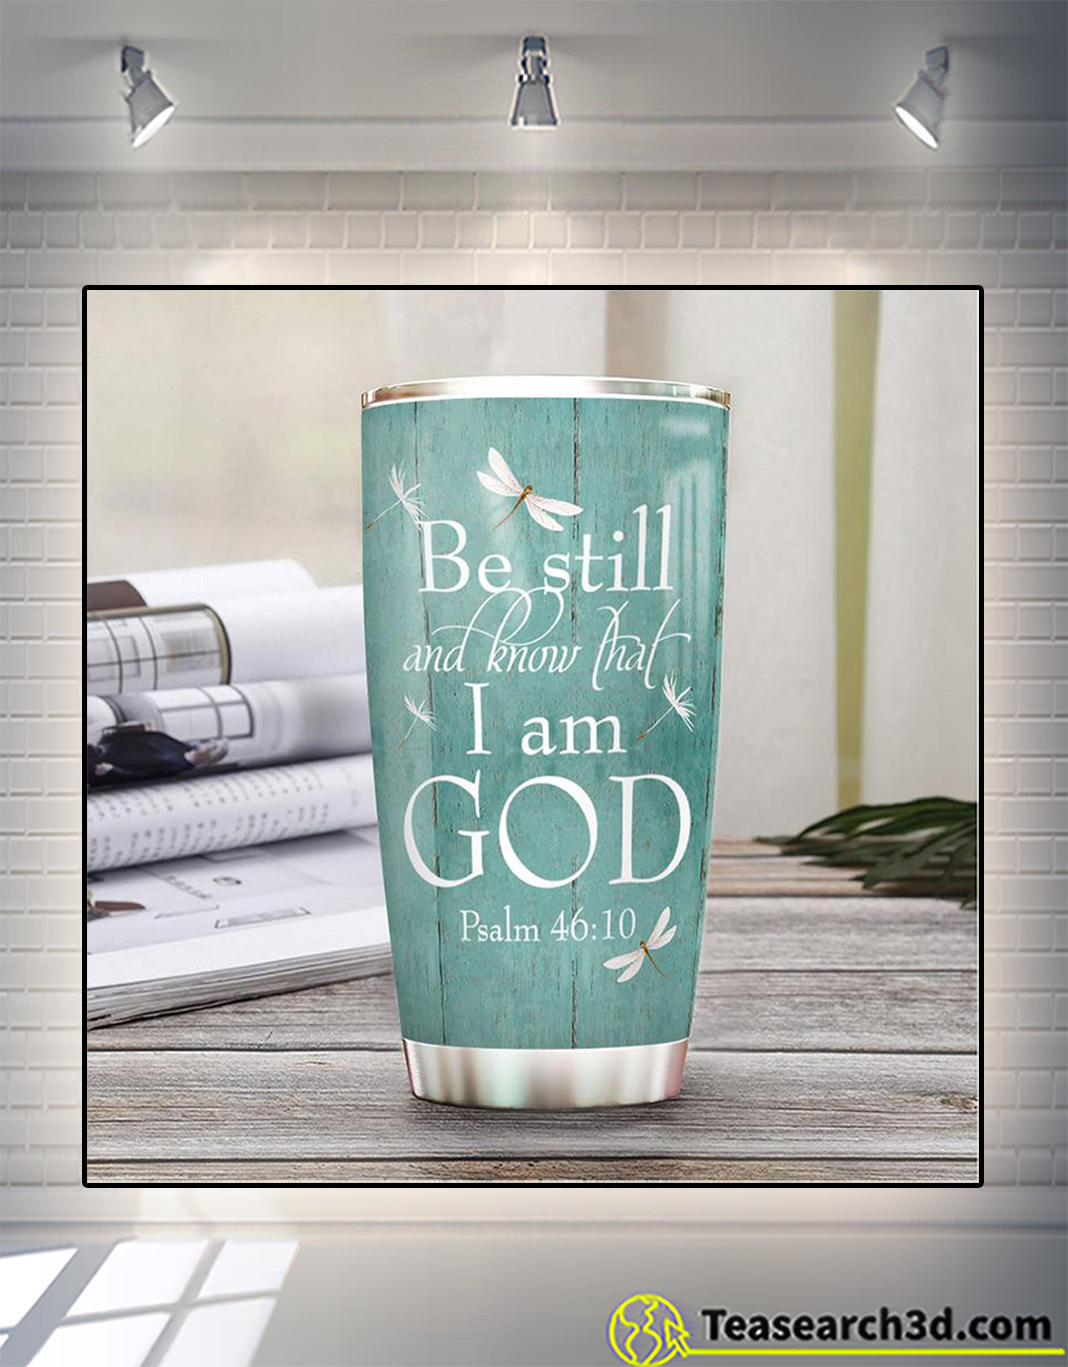 Personalized custom name faith be still and know that I am god tumbler 2